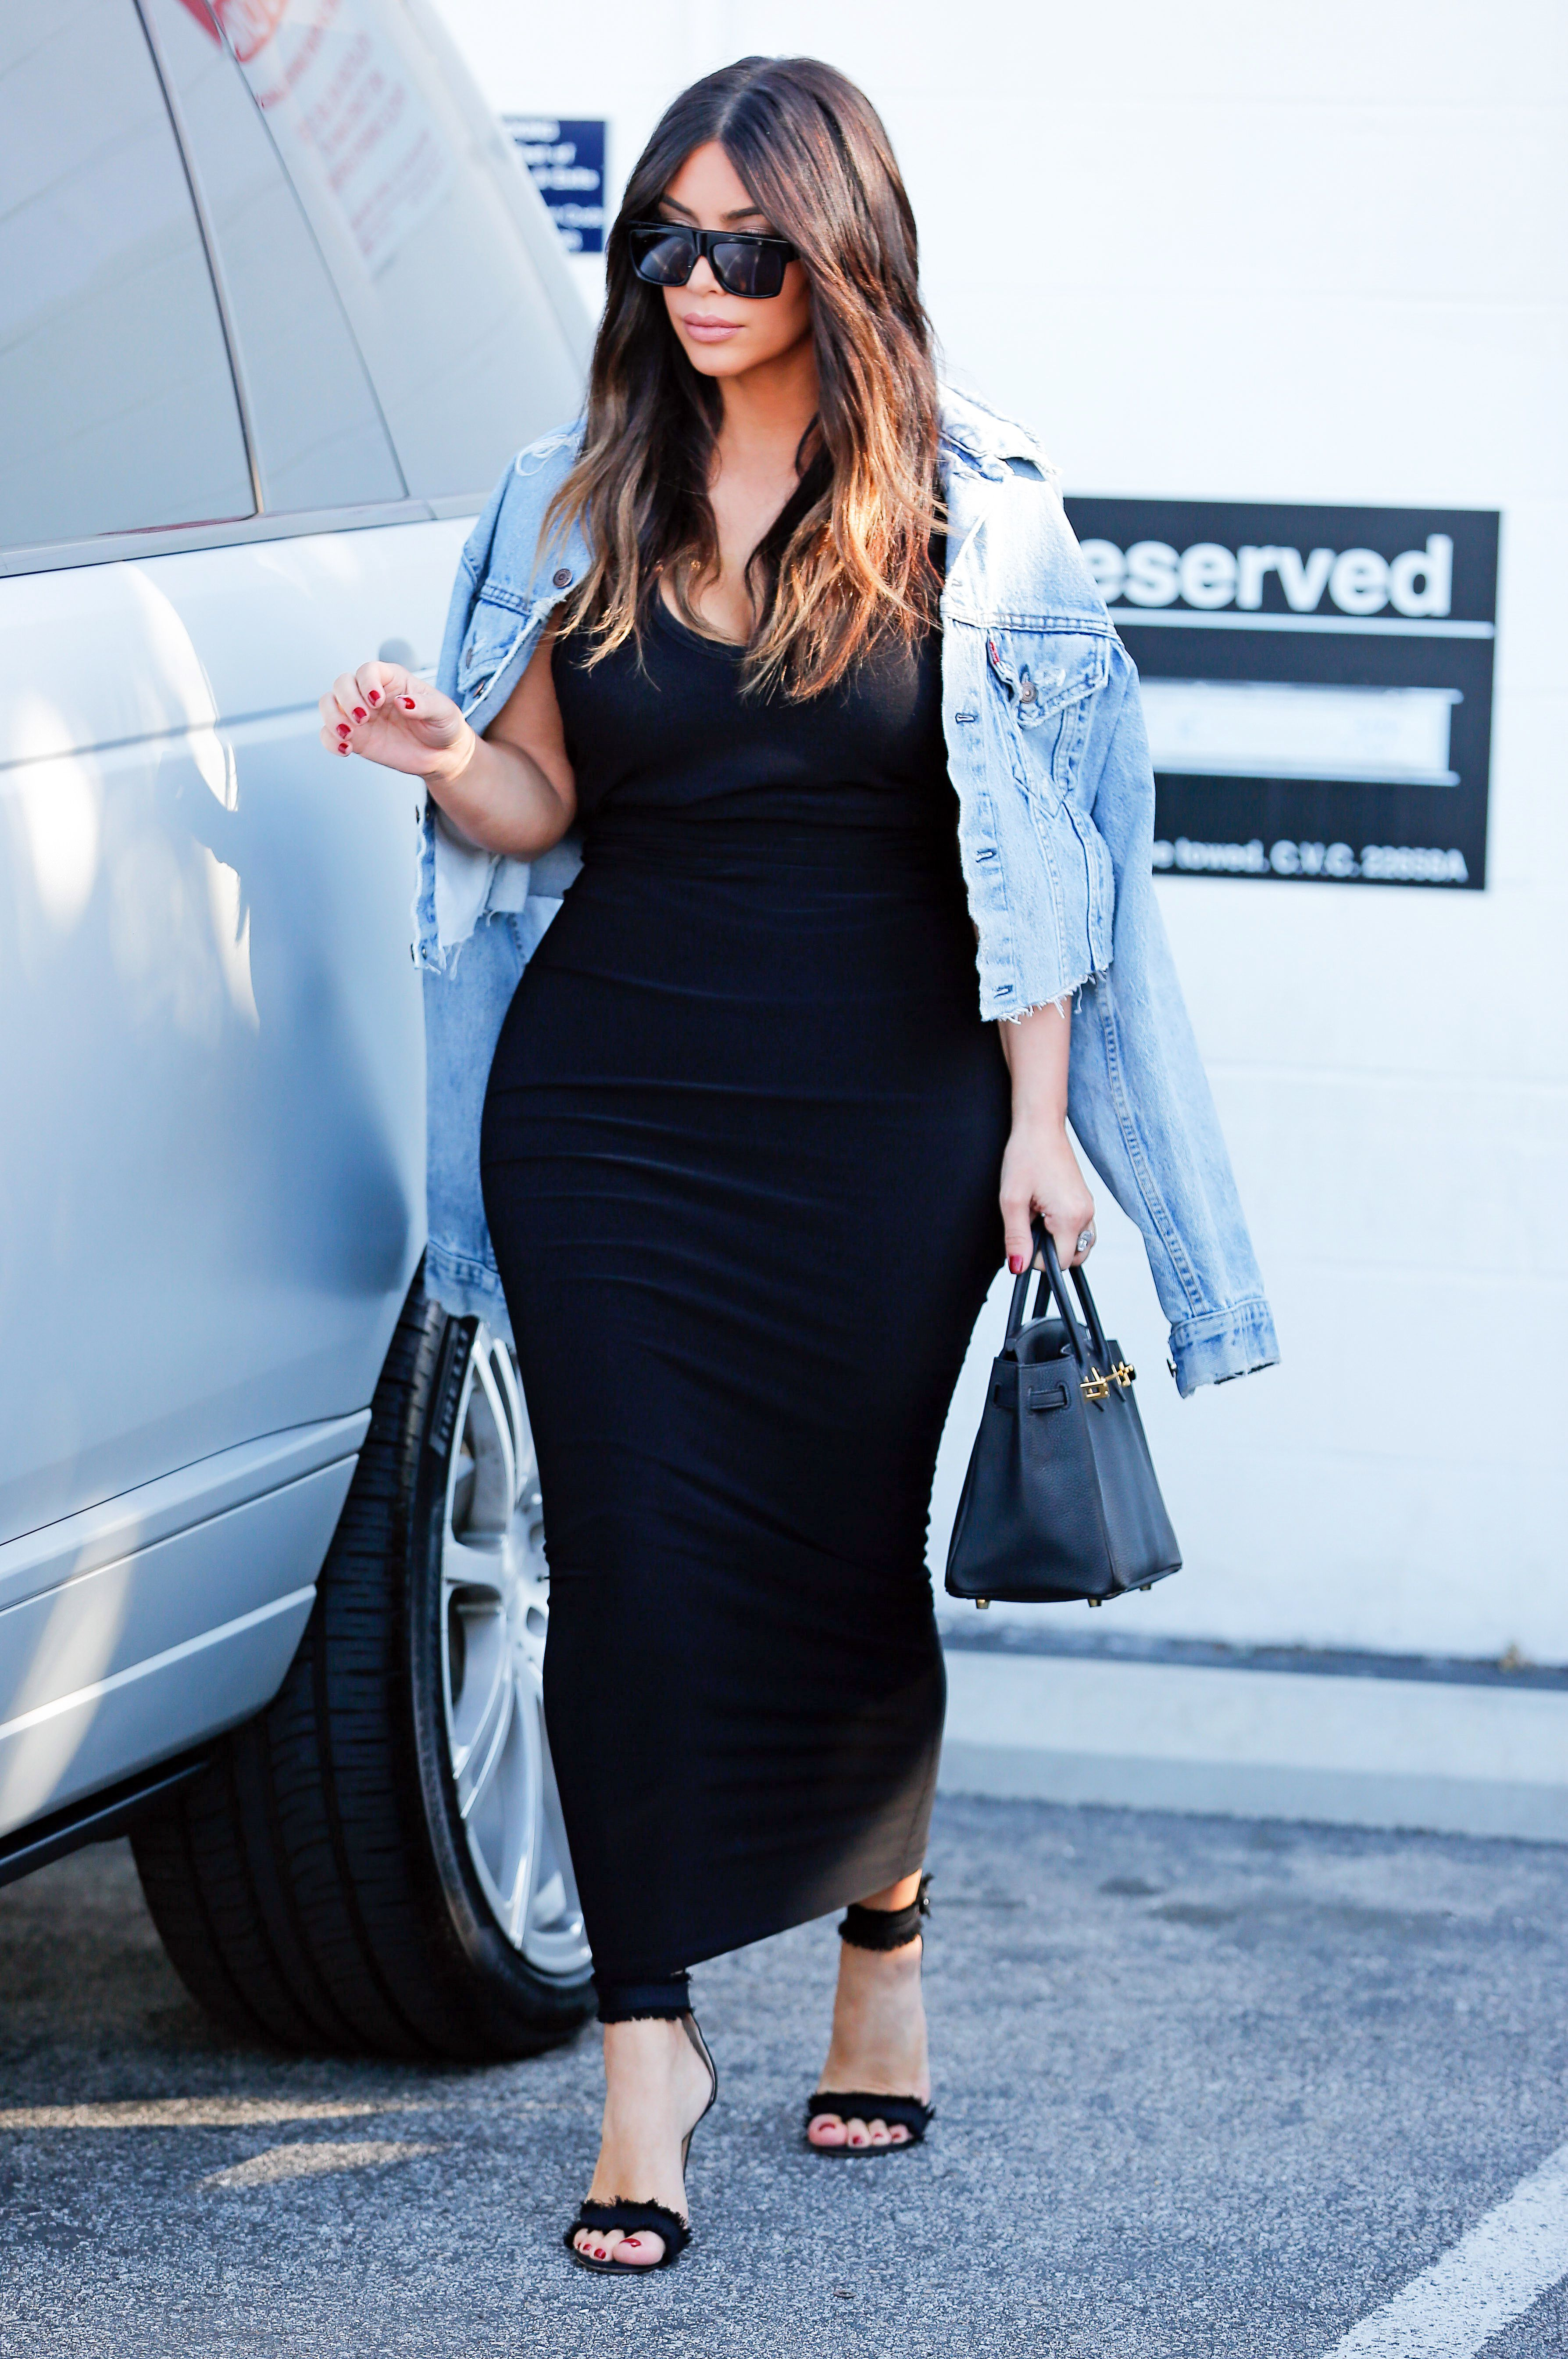 Black dress jean jacket - Best Looks Kim Kardashian